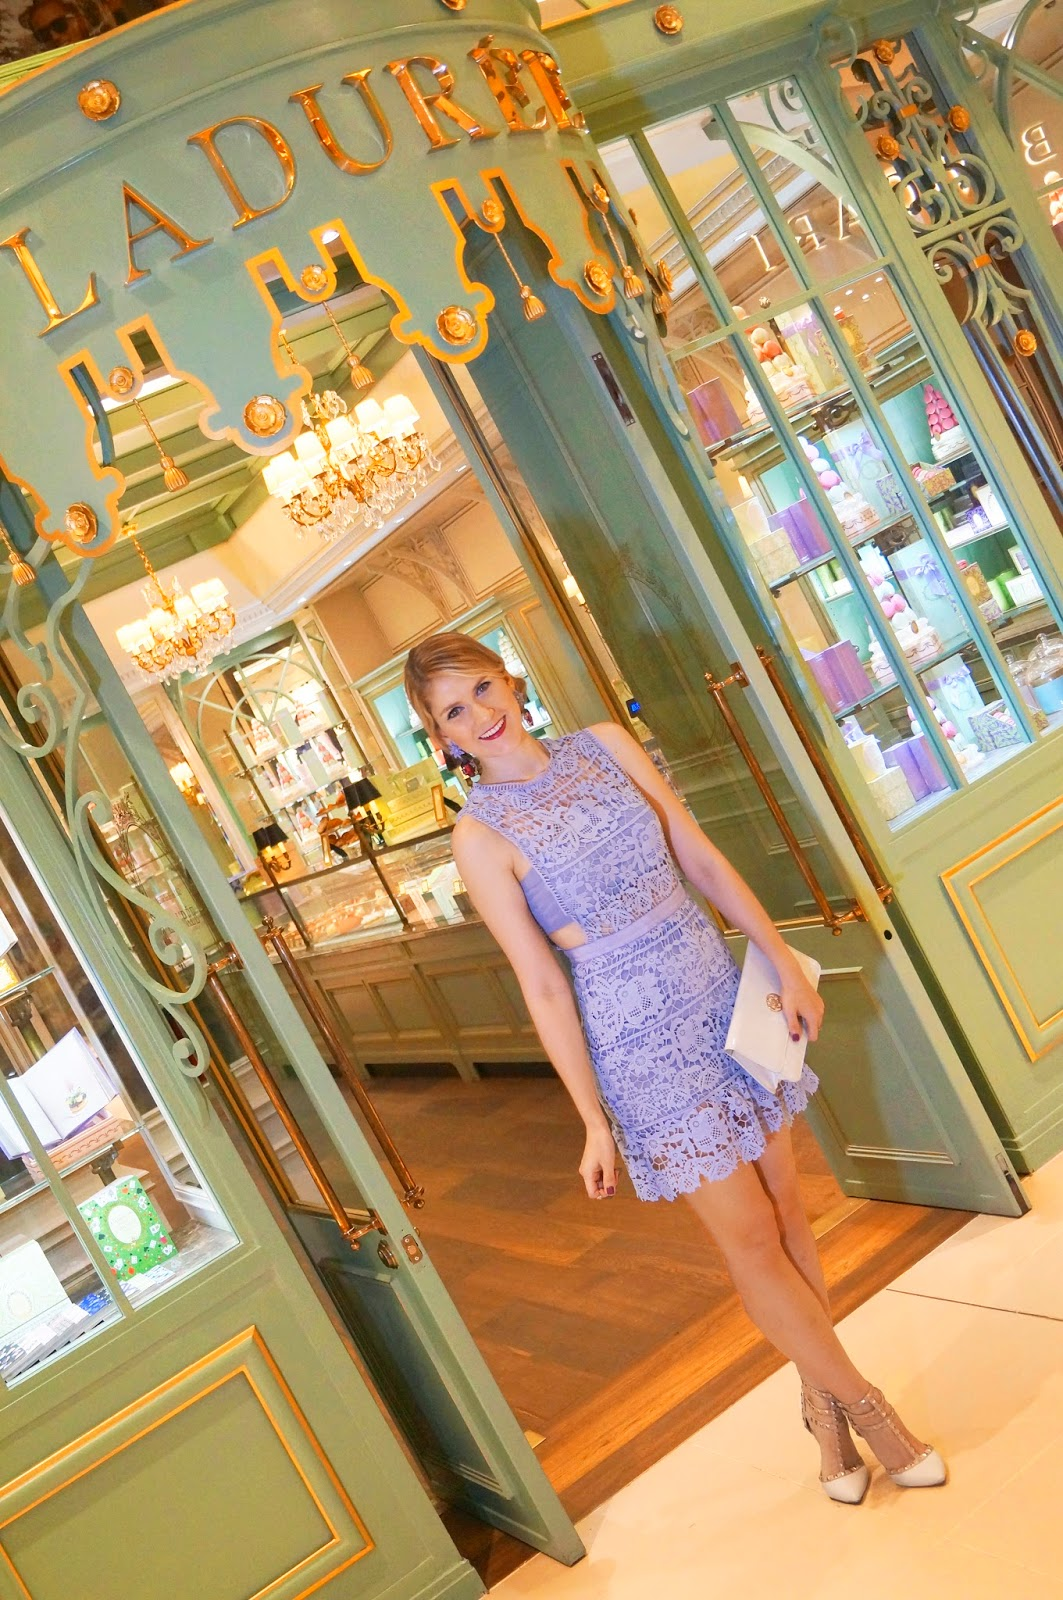 The beautiful french bakery Ladurée in Panama City